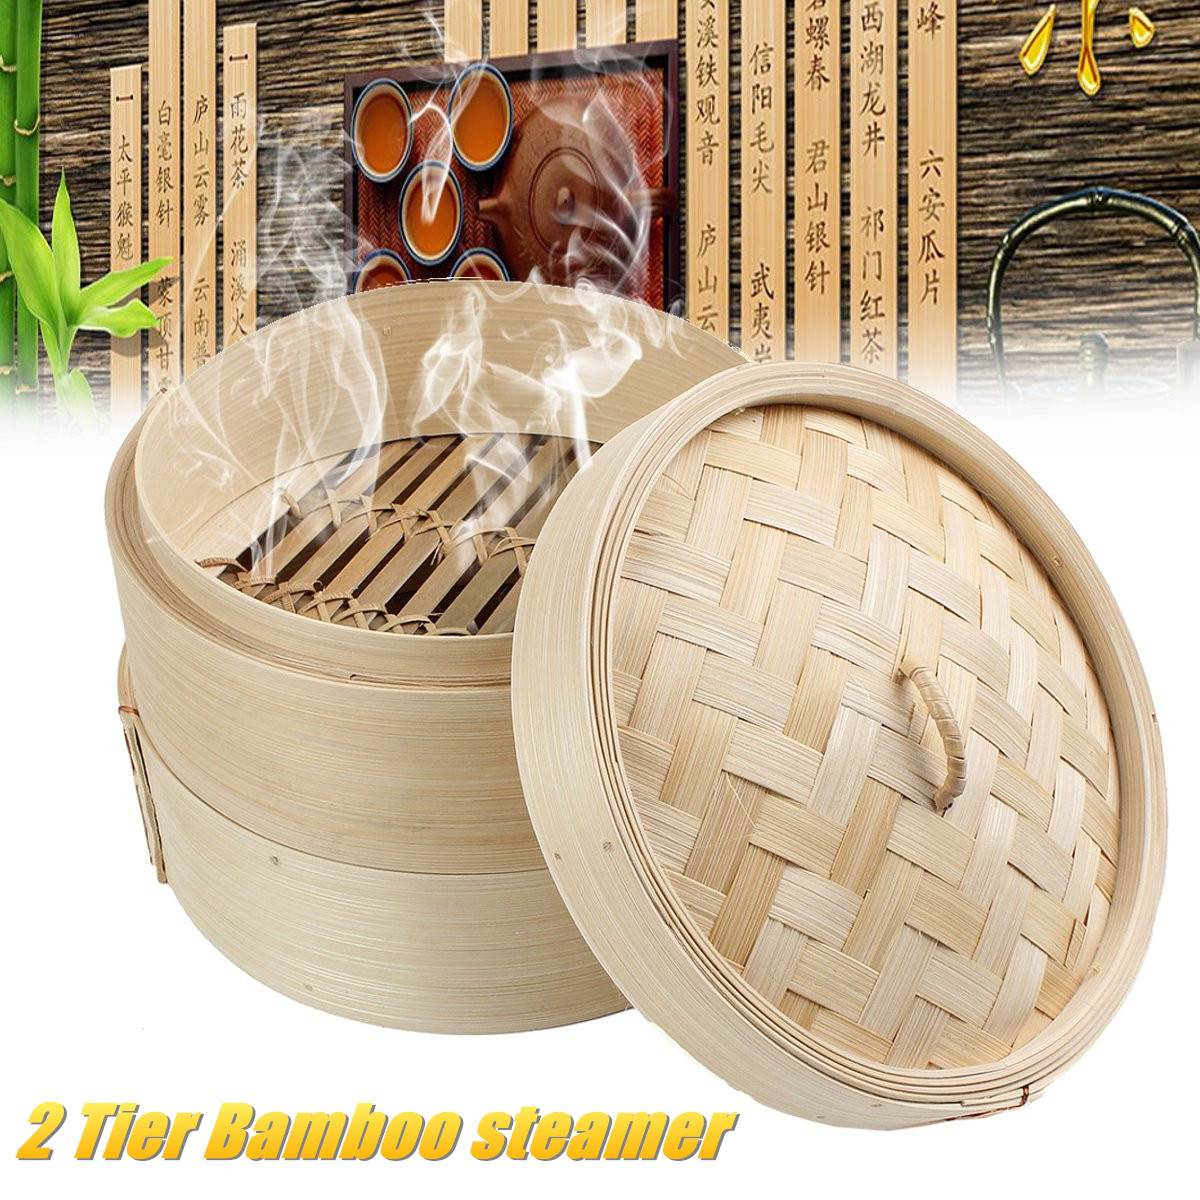 2 Tier 8-Inch Cooking Bamboo Steamer Fish Rice Vegetable Snack Basket Set Kitchen Cooking Tools Dumpling Steamer Steam Pot